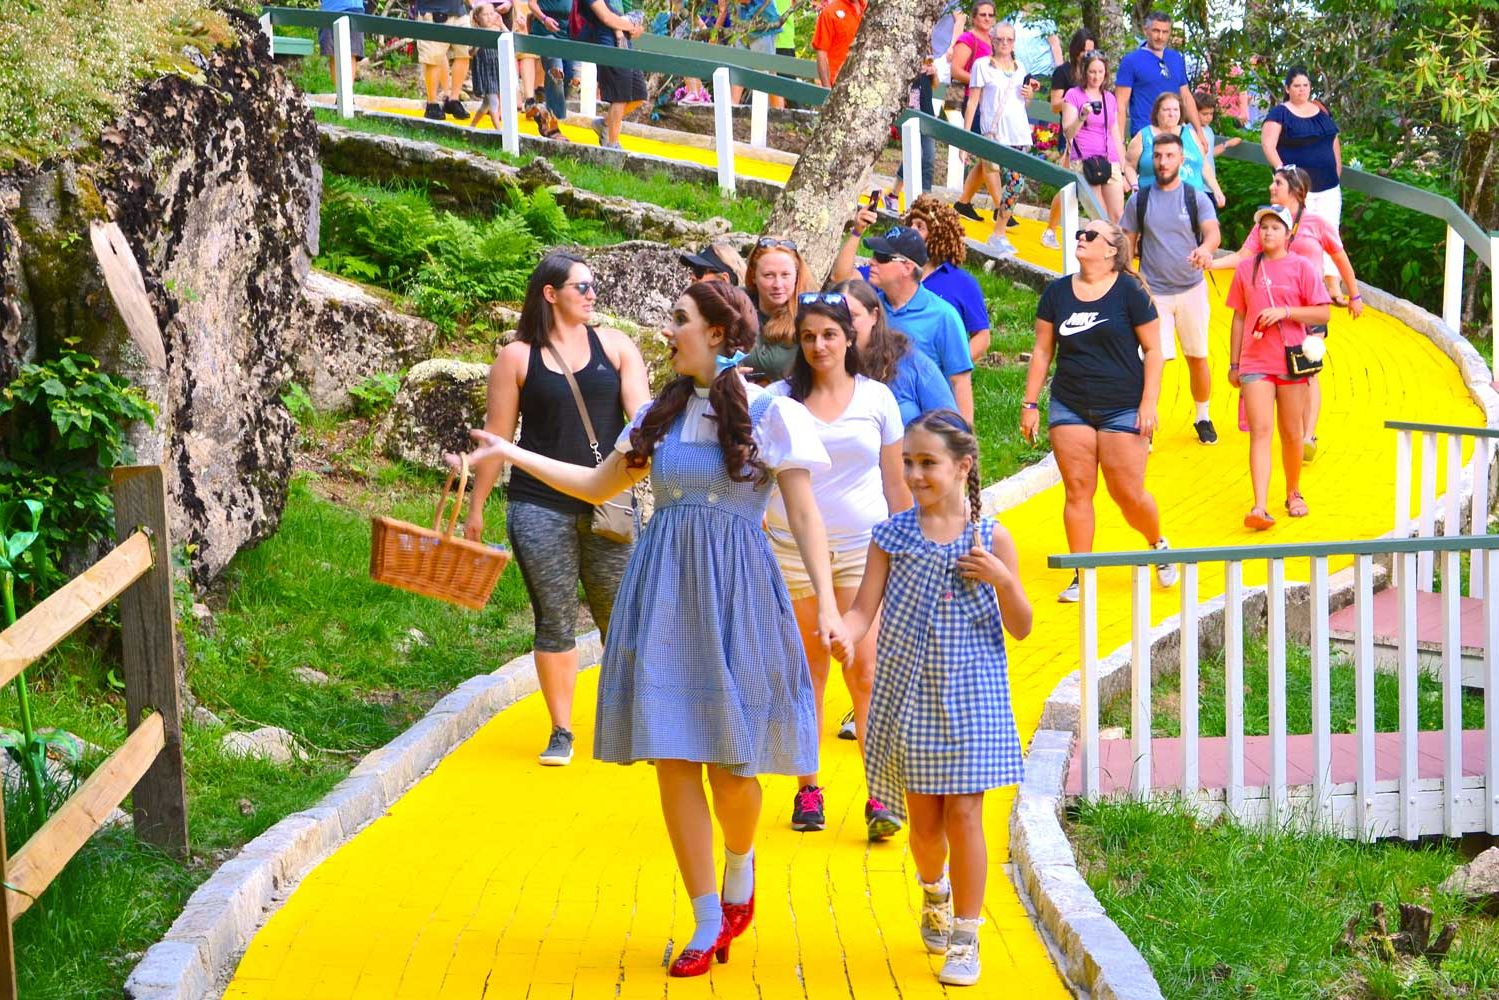 North Carolina's 'Wizard of Oz' Theme Park Is Reopening for a Few Days This Summer —Here's How to Visit